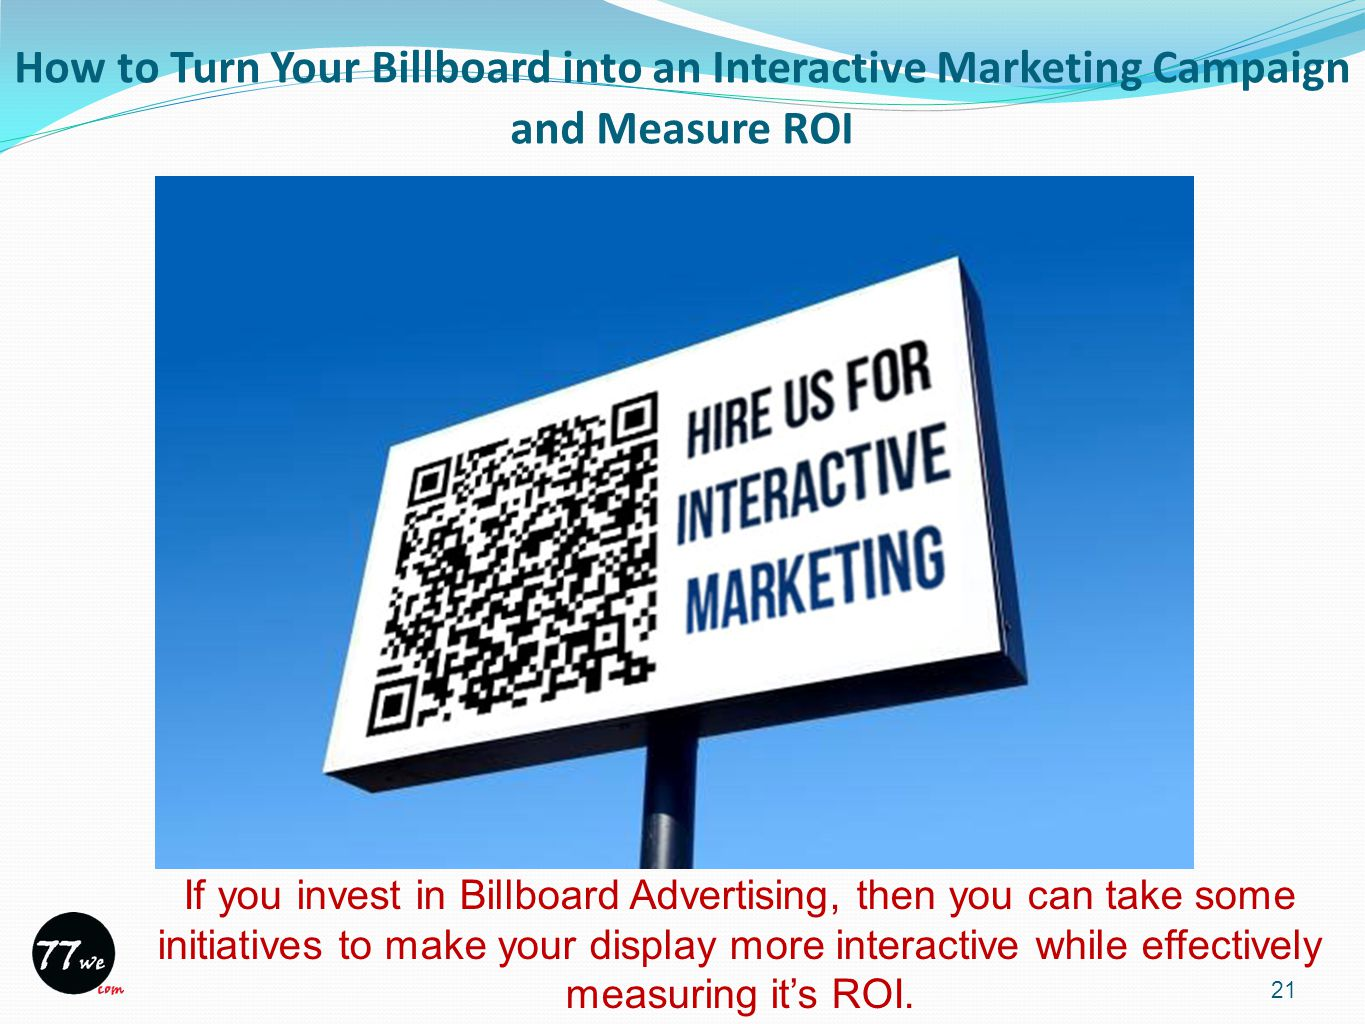 How to Turn Your Billboard into an Interactive Marketing Campaign and Measure ROI 21 If you invest in Billboard Advertising, then you can take some initiatives to make your display more interactive while effectively measuring it's ROI.